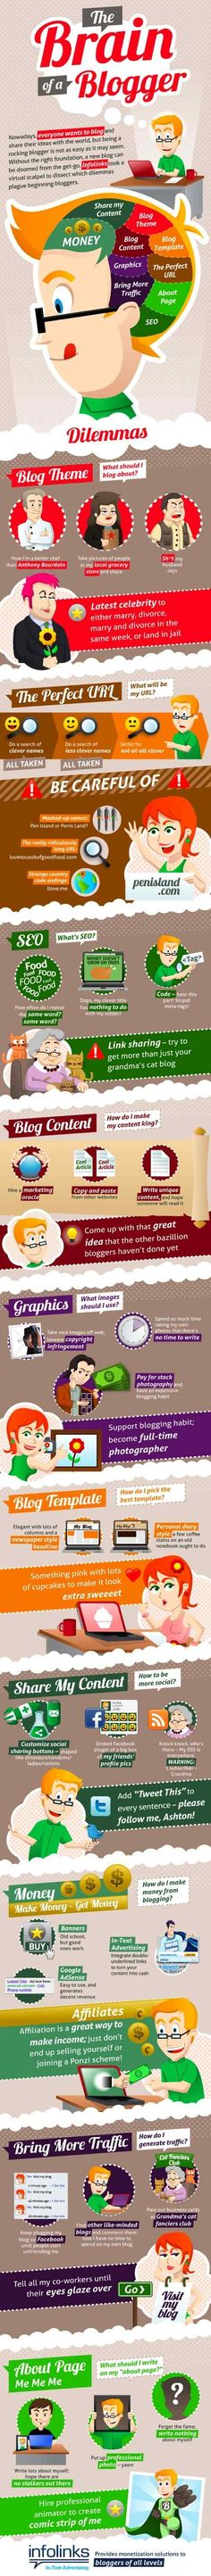 The Brain of the Beginning Blogger [INFOGRAPHIC]